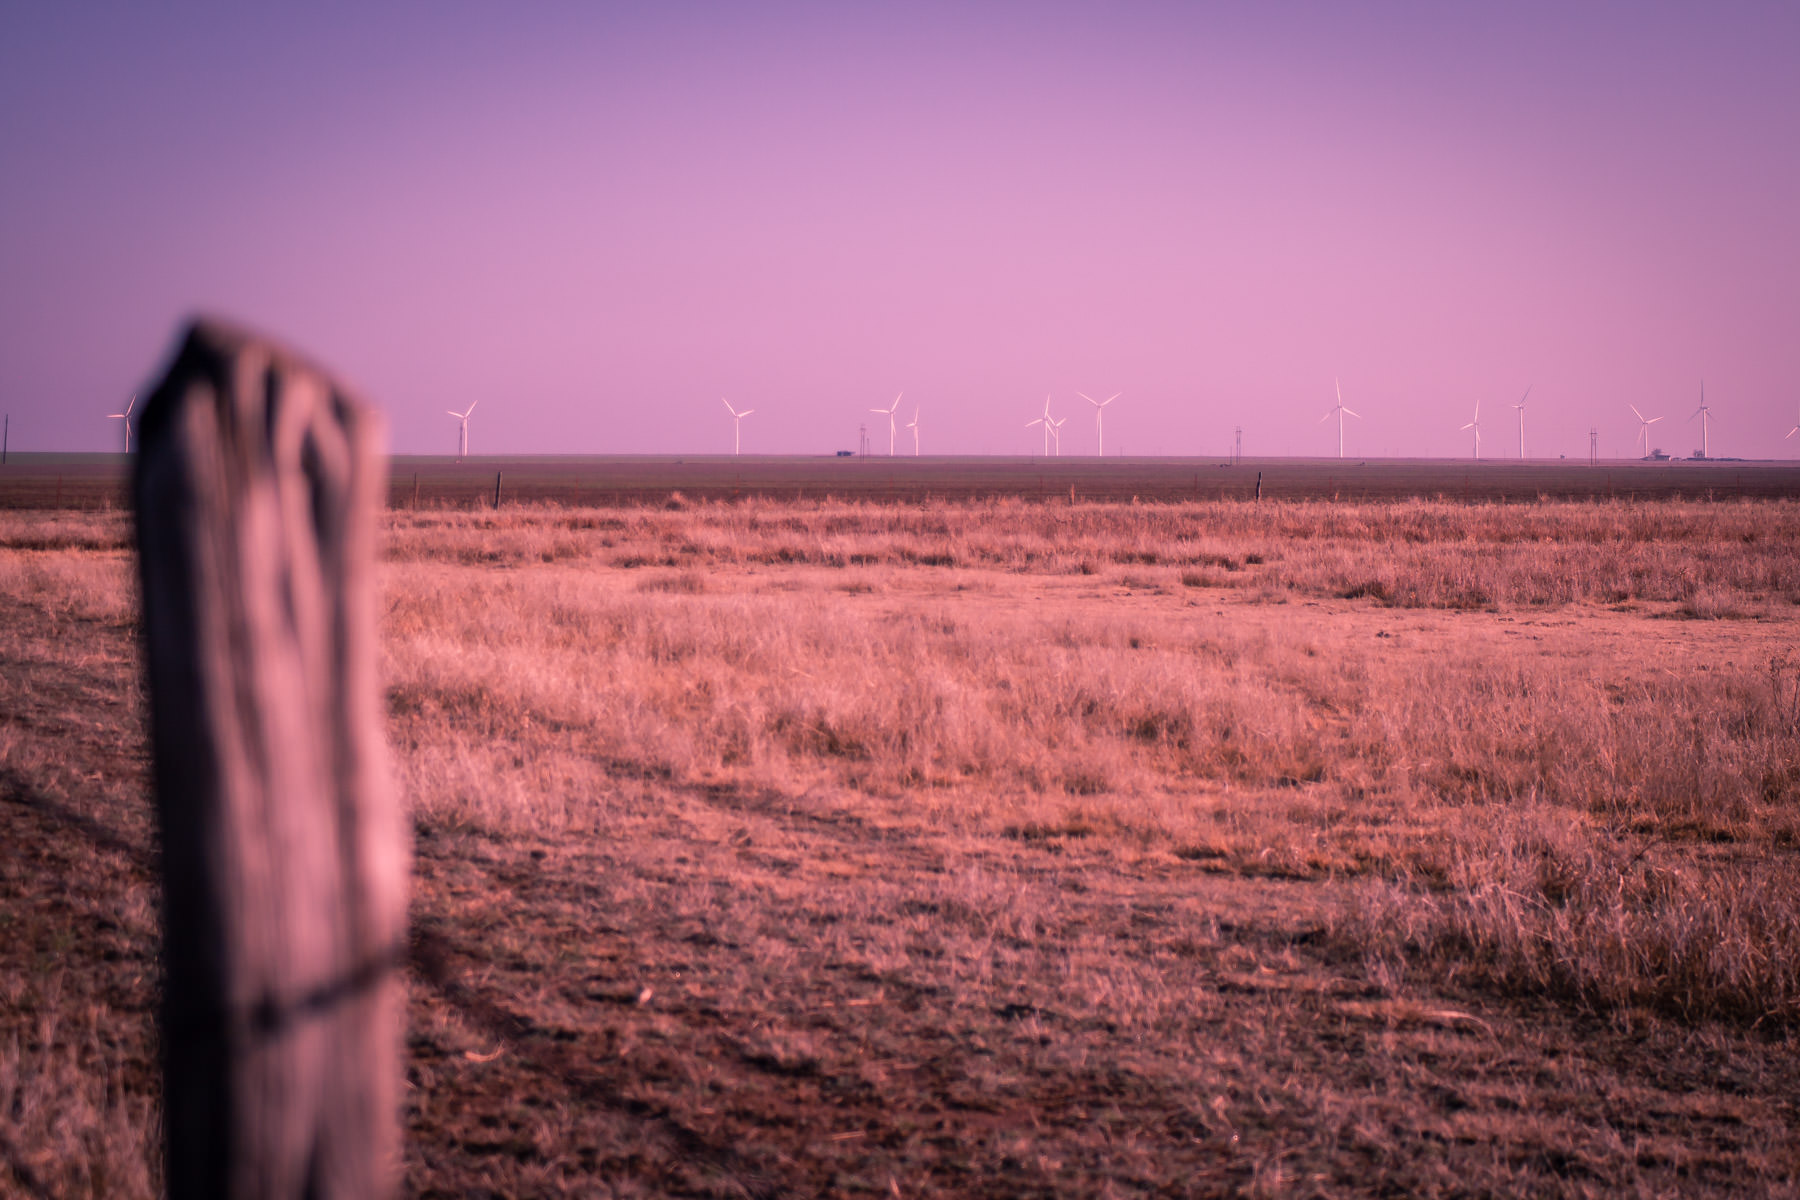 Giant wind generators dot the horizon as the sun rises on the Texas Panhandle.